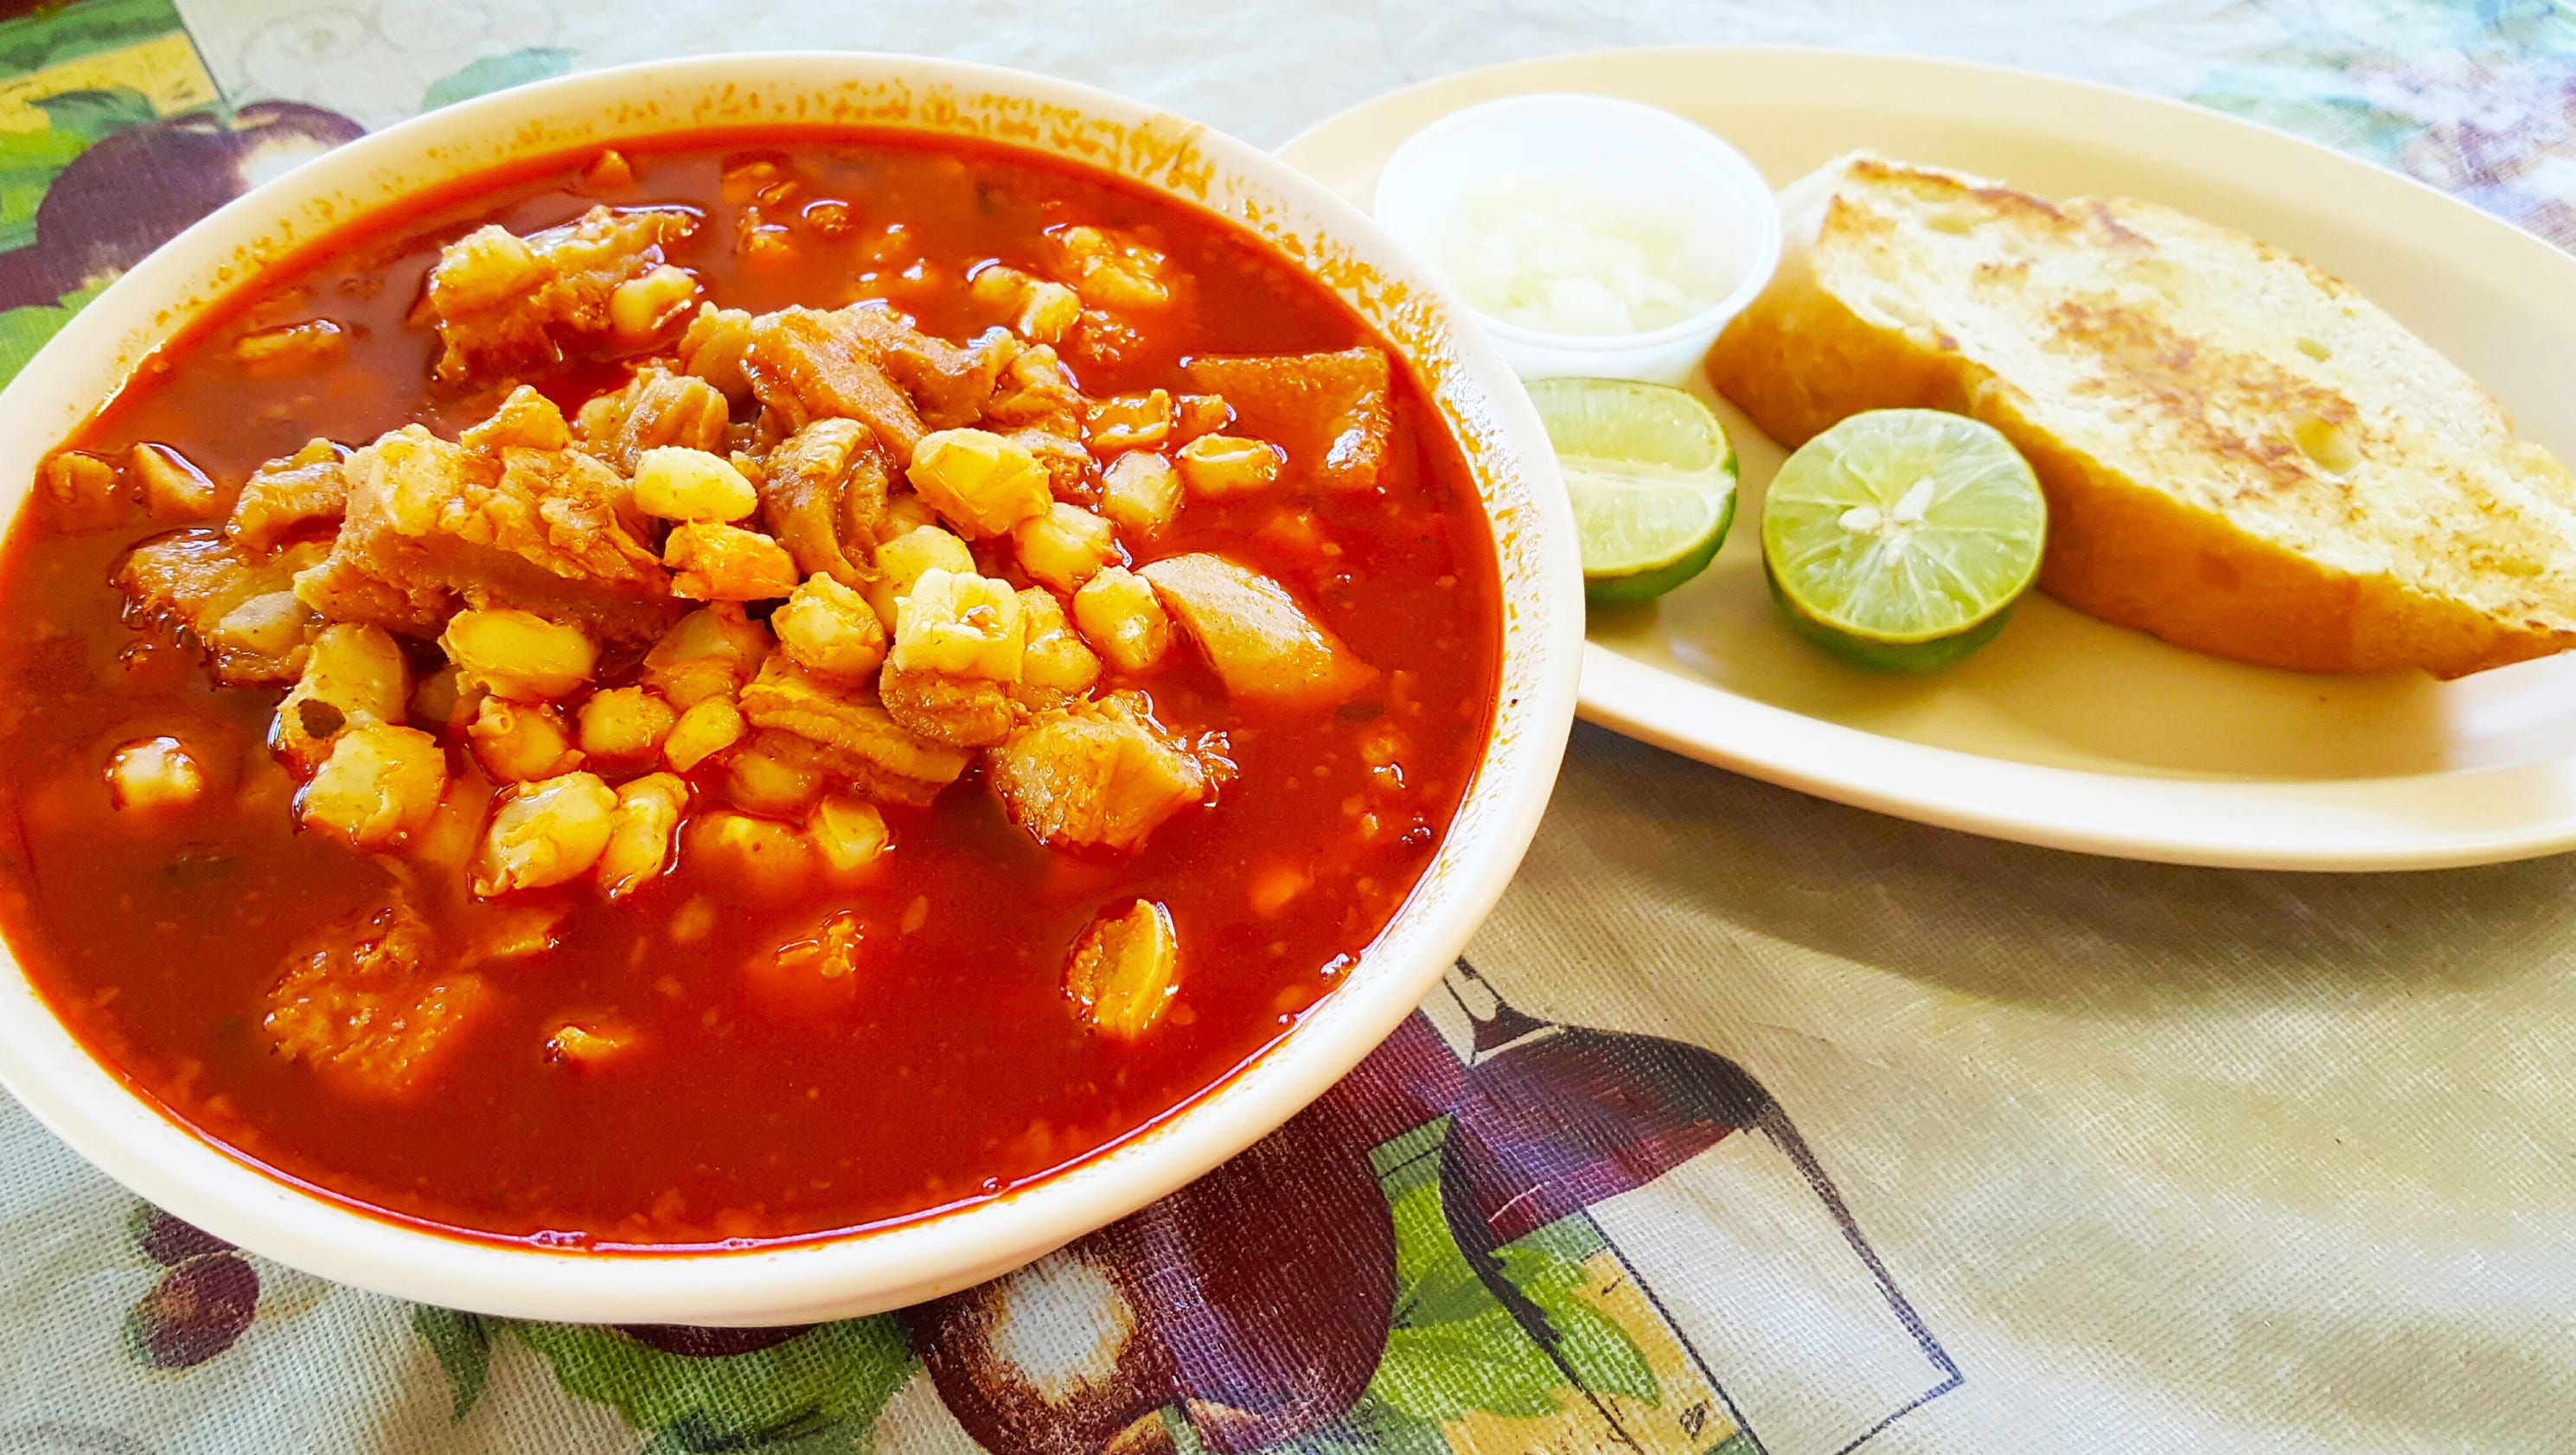 2 Story Homes A Staple On South Main Bravo S Cafe Menudo Is A Must